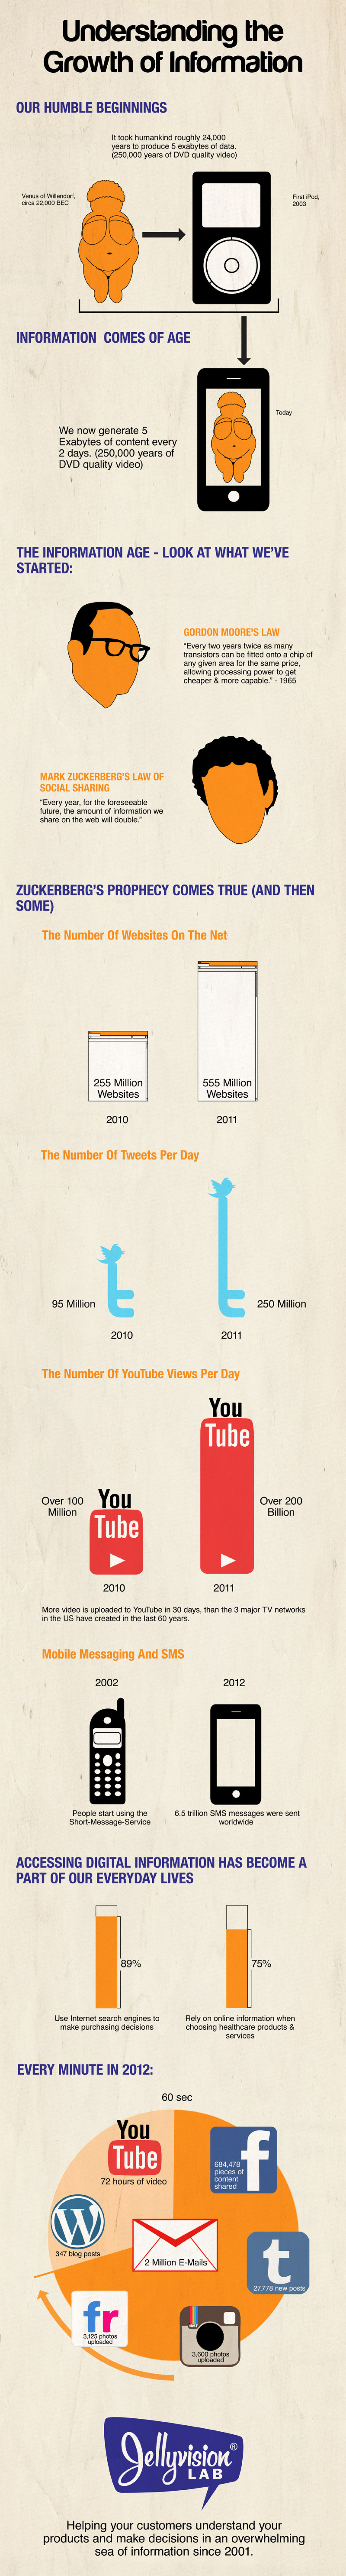 Understanding the Growth of Information Infographic